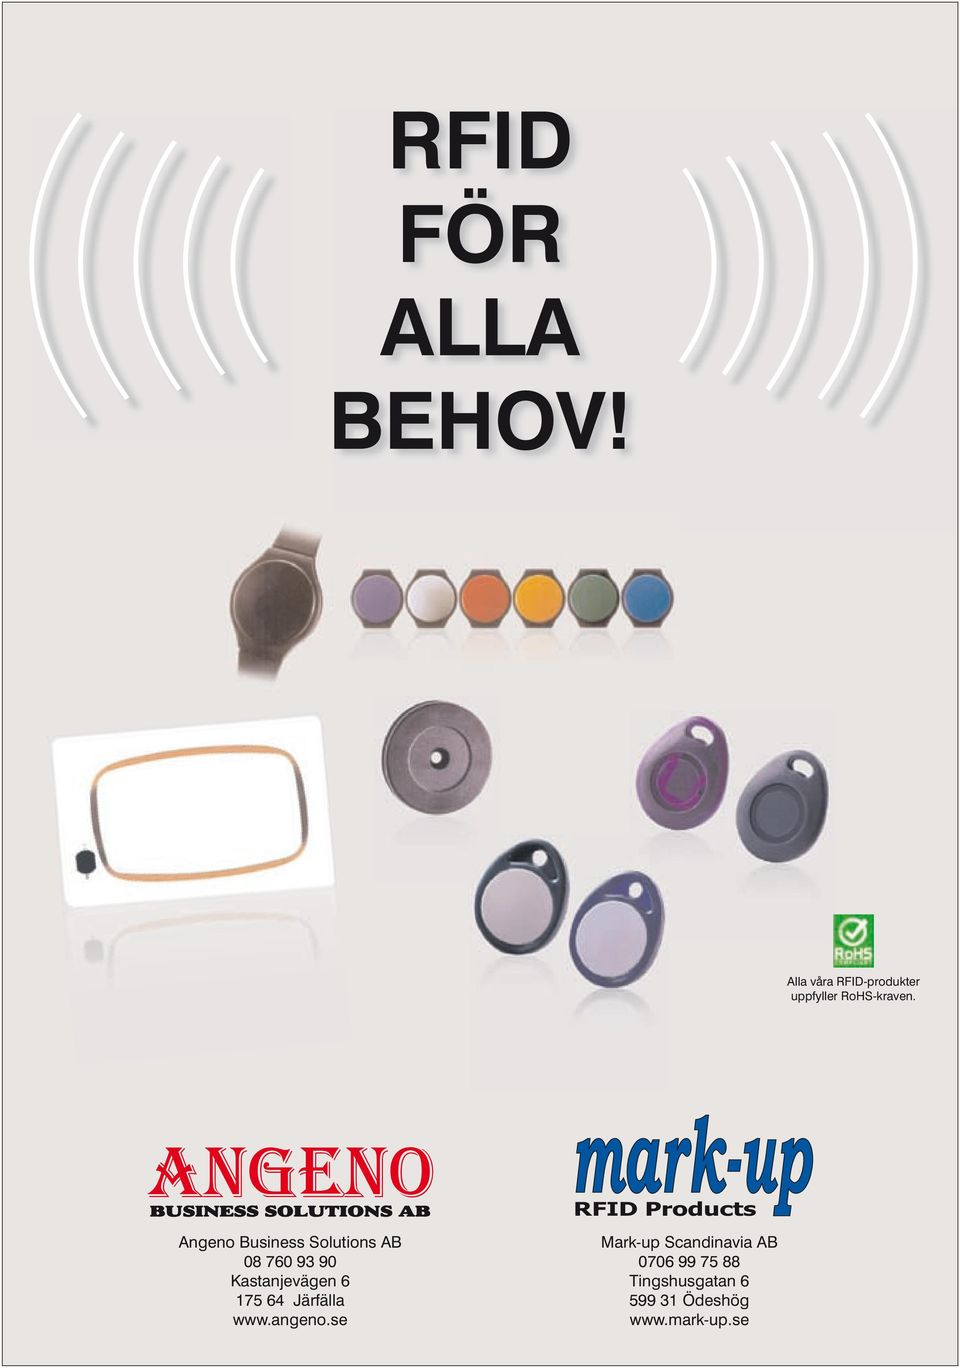 RFID Products Angeno Business Solutions AB 08 760 93 90